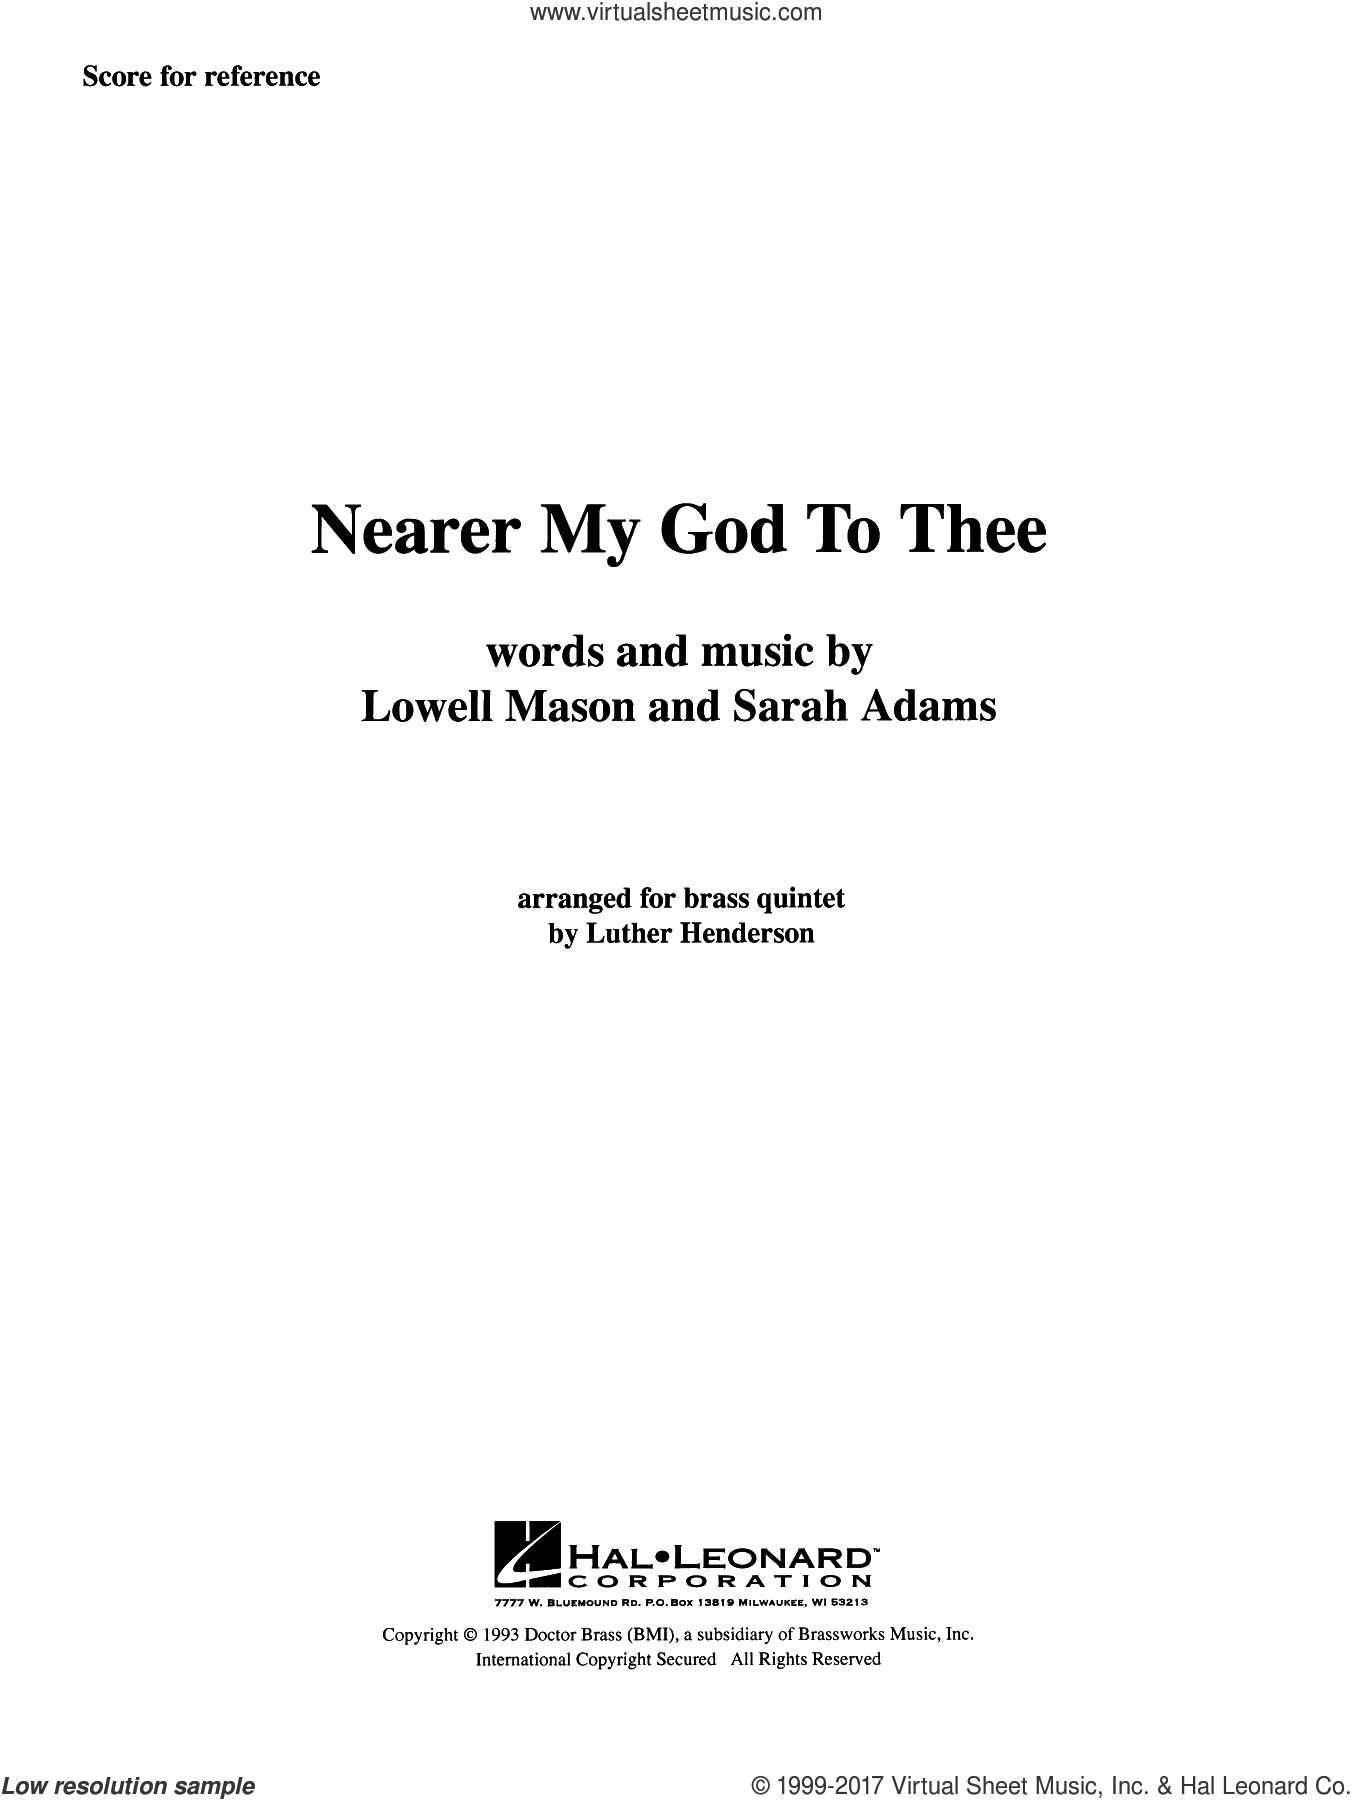 Nearer My God to Thee (COMPLETE) sheet music for brass quintet by Luther Henderson and Lowell Mason and Sarah Adams, classical score, intermediate